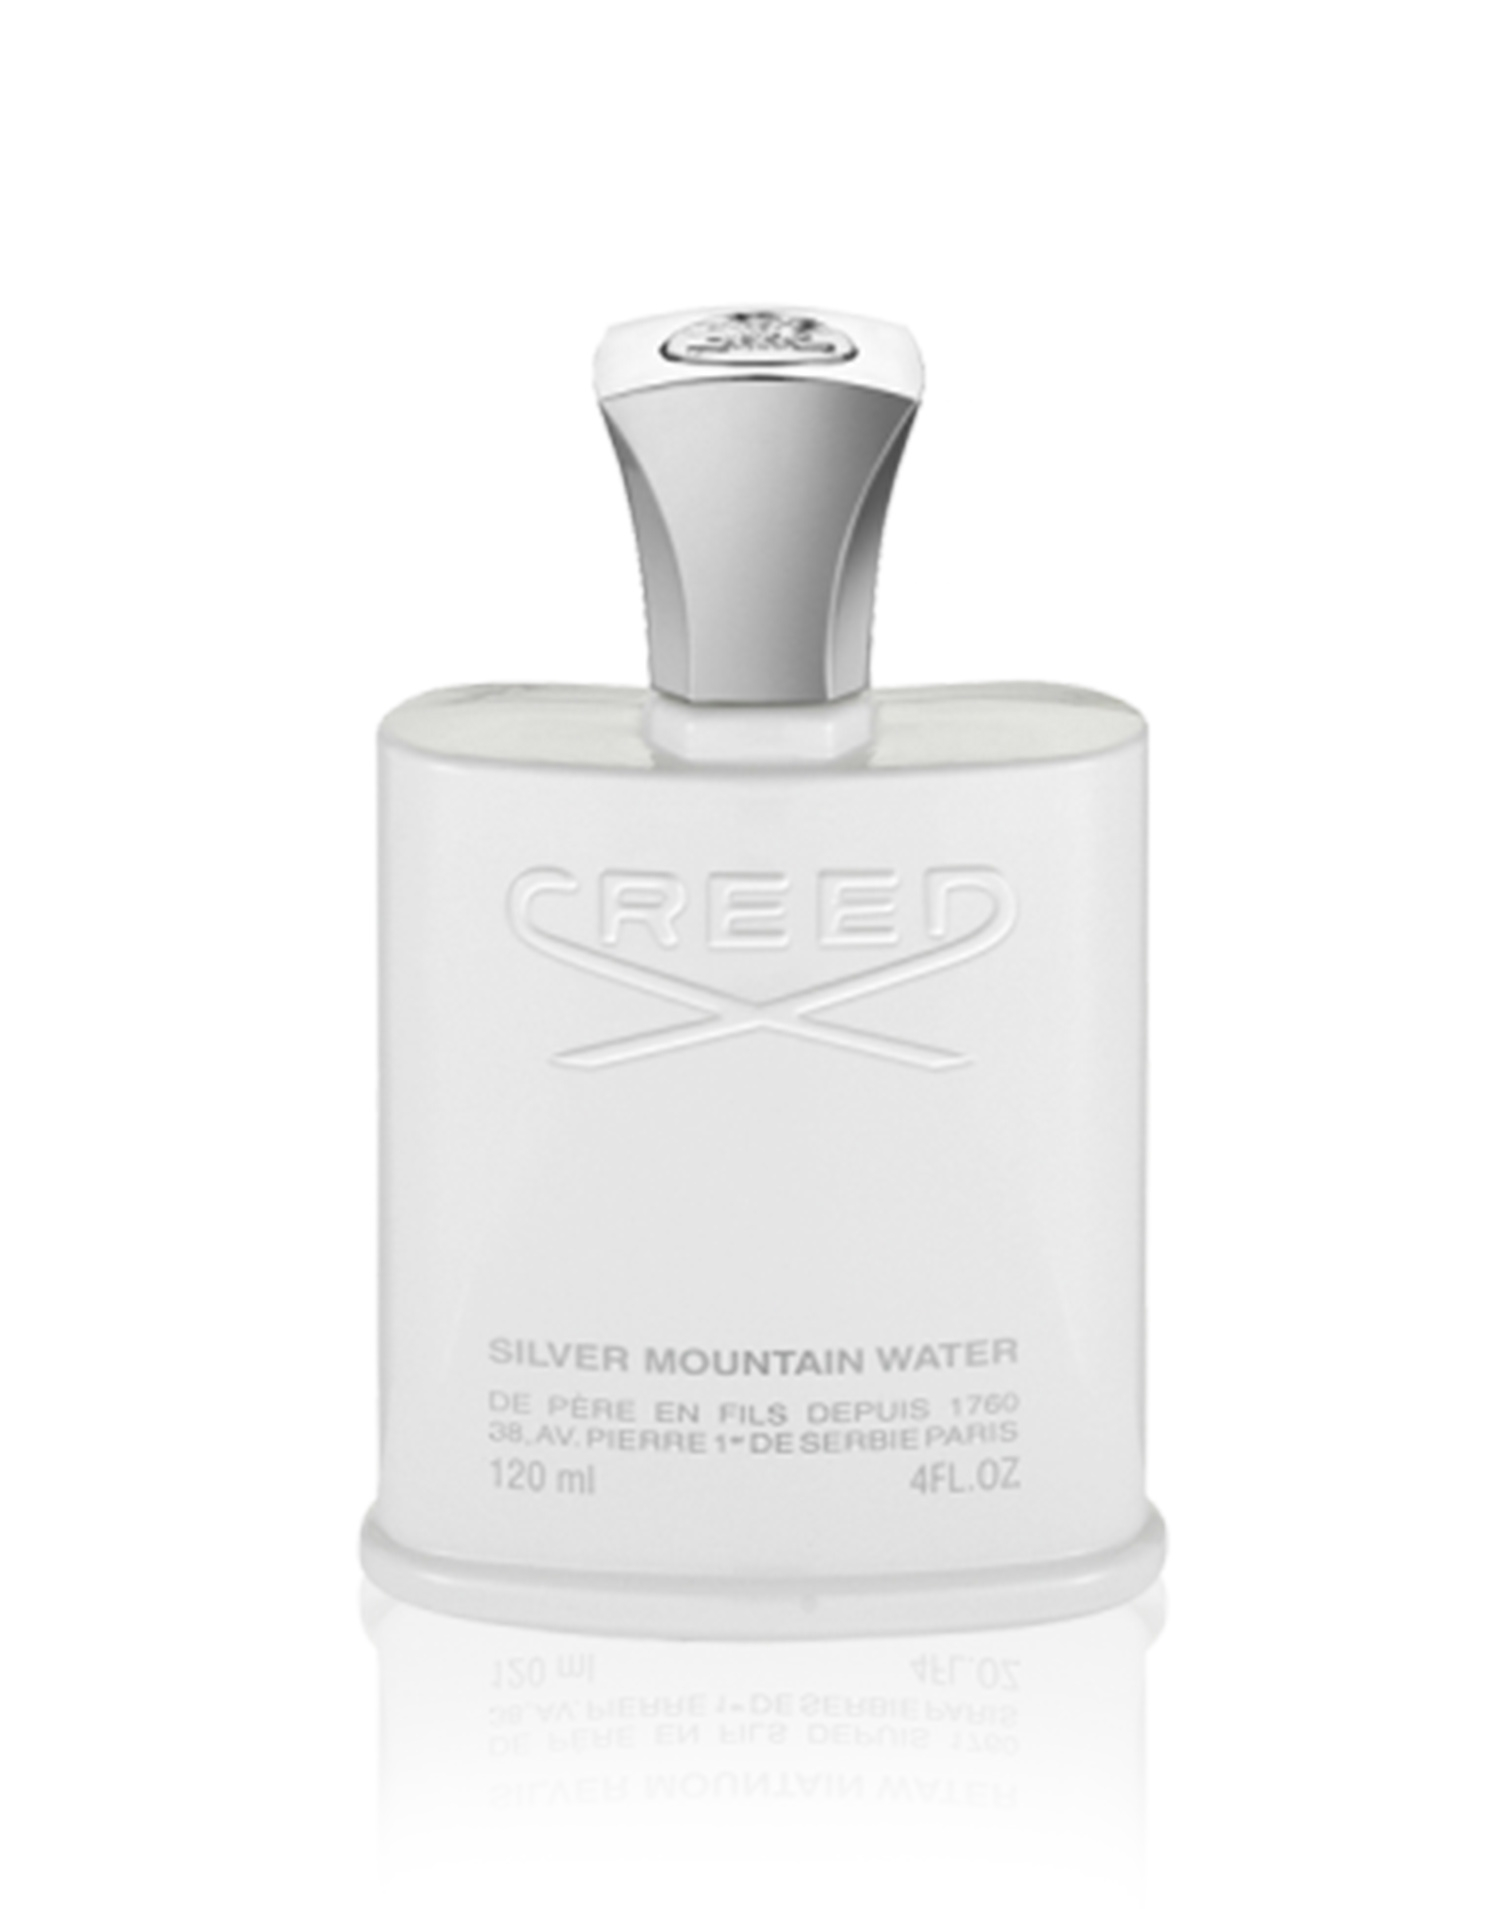 Creed Silver Mountain Water Eau De Parfum 4 FL OZ 2 - ادو پرفيوم مردانه کريد مدل Silver Mountain Water حجم 120 ميلي ليتر